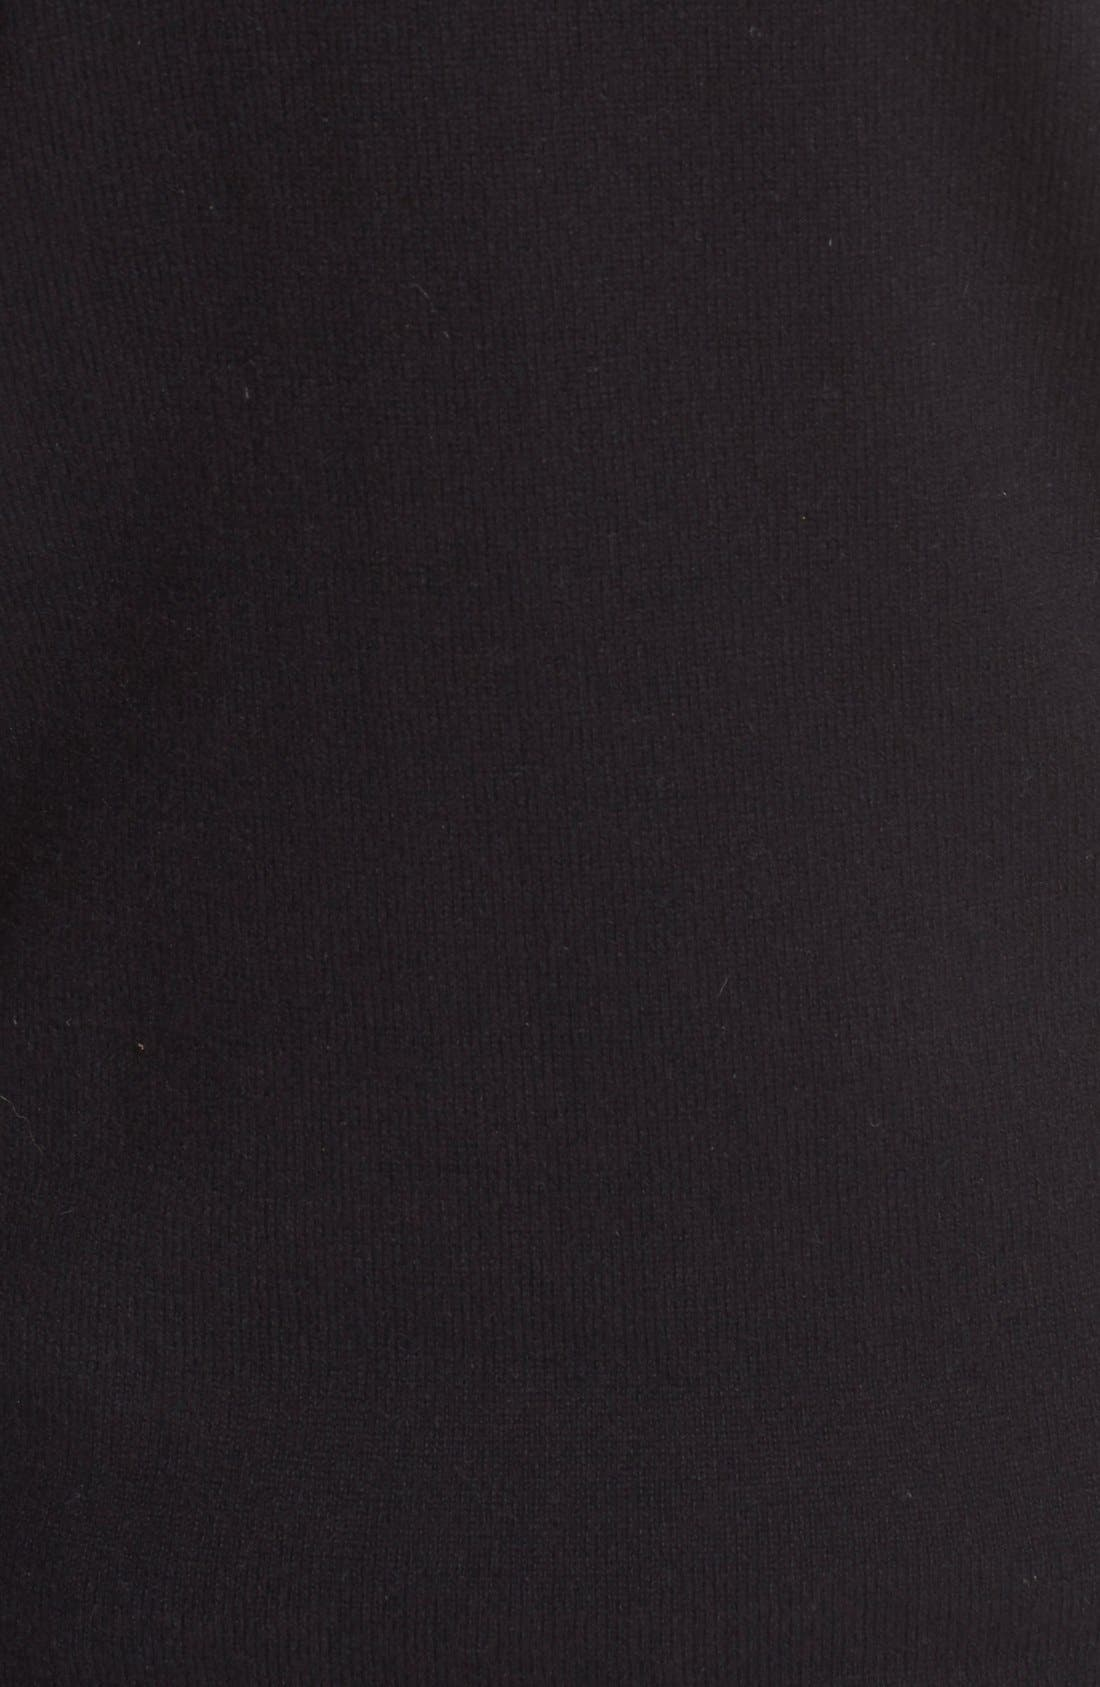 '1970' Wool Sweater,                             Alternate thumbnail 3, color,                             Black